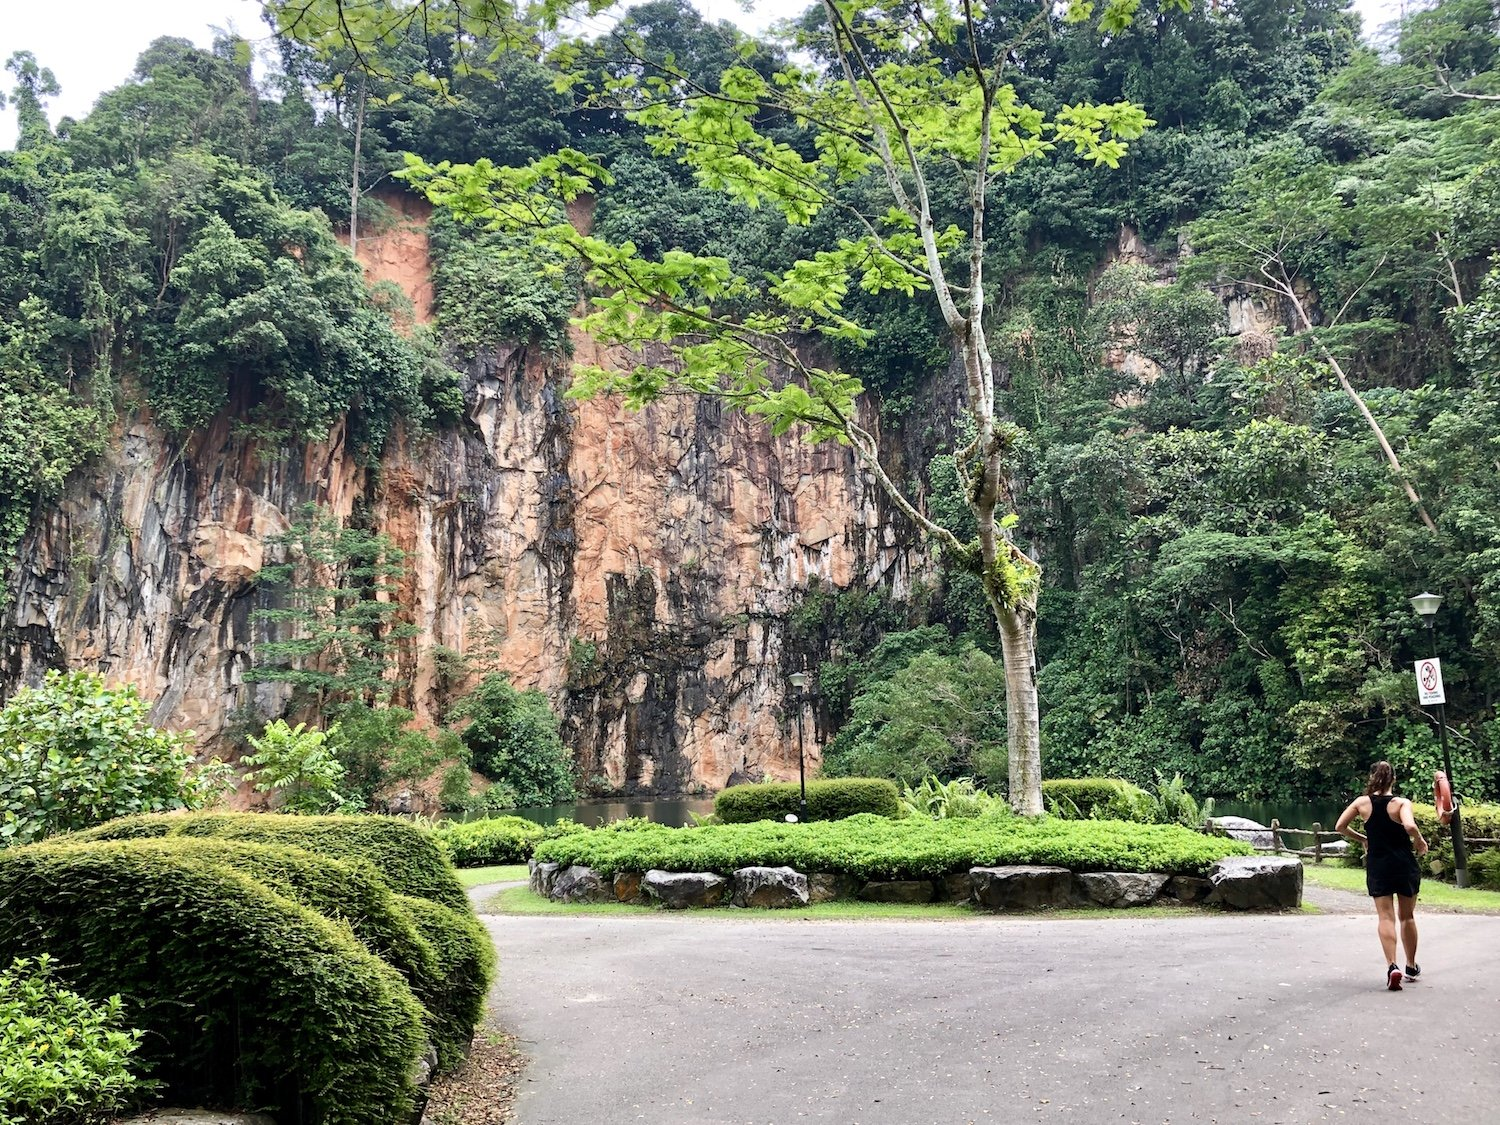 A disused quarry and World War II memorial can be found at Bukit Batok Nature Park